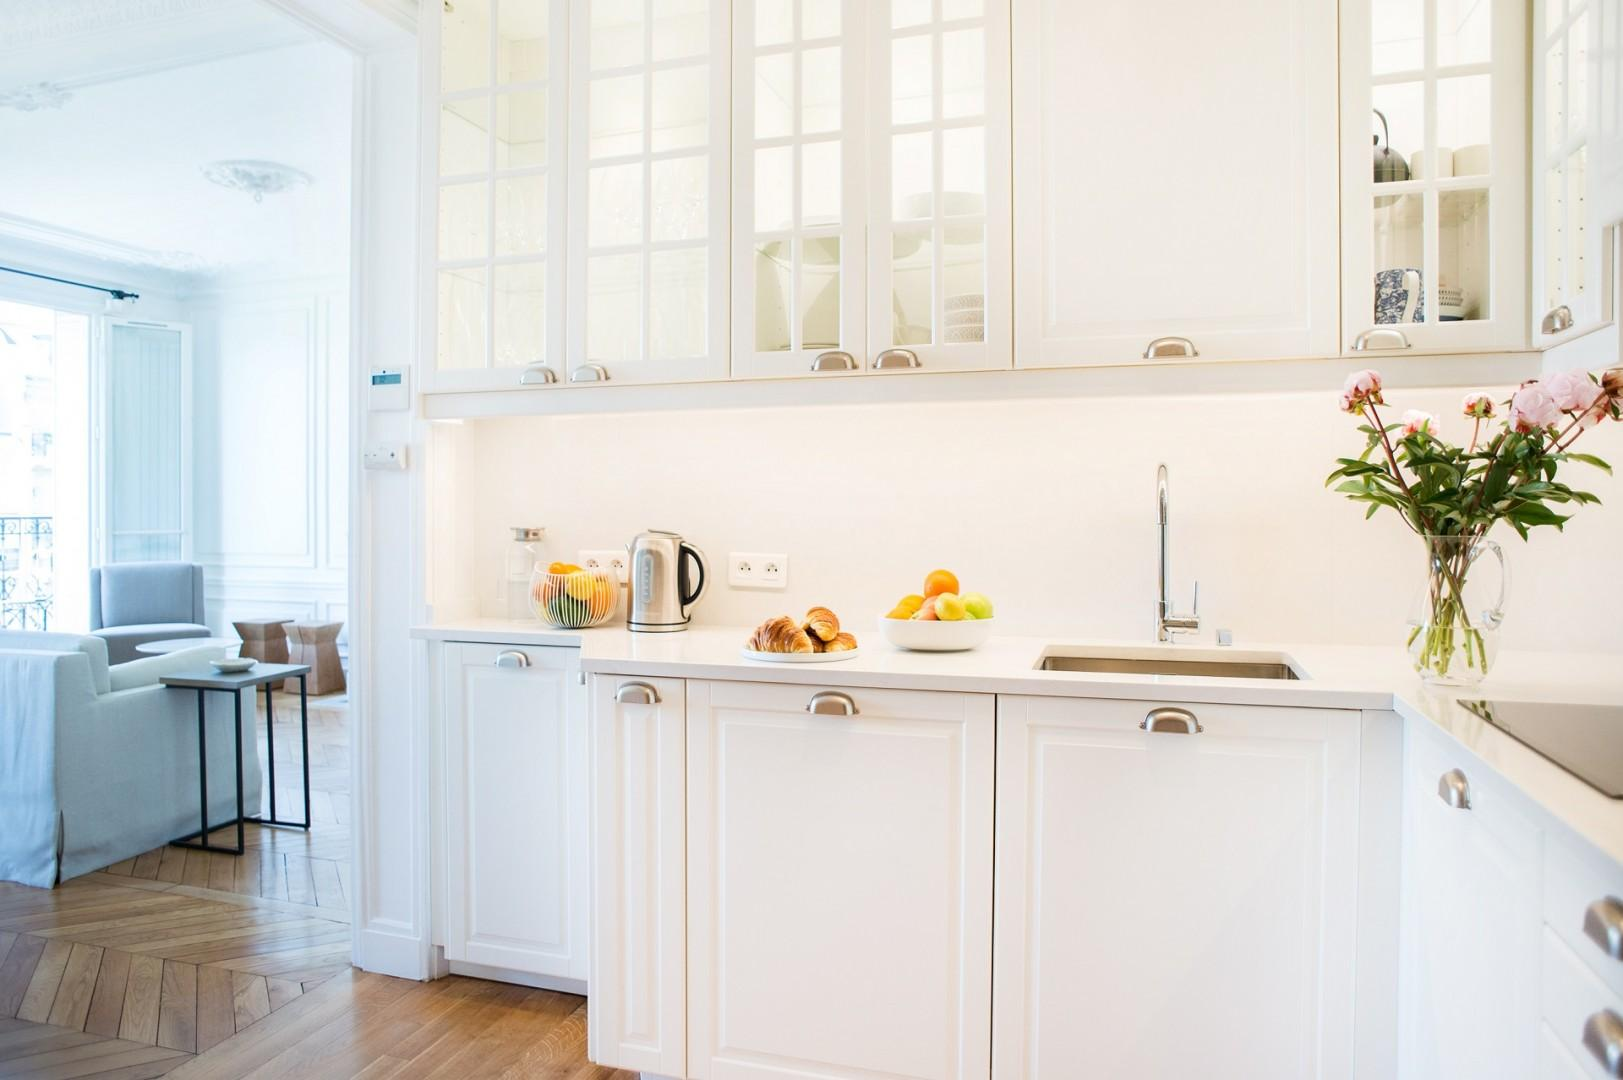 The kitchen separates common areas and private bedrooms.